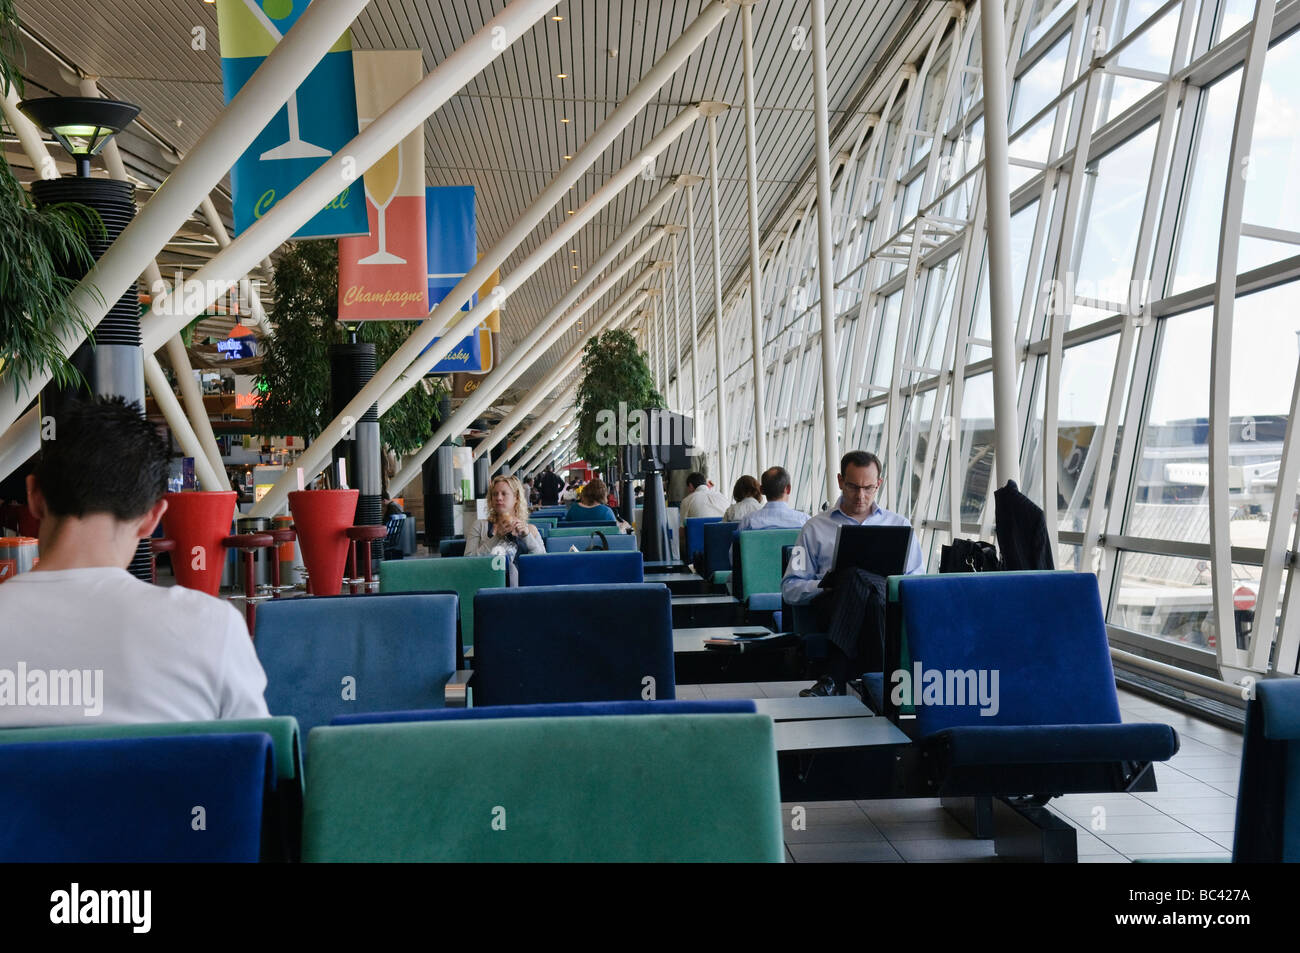 Passengers waiting at departure lounge at Schiphol Airport - Stock Image